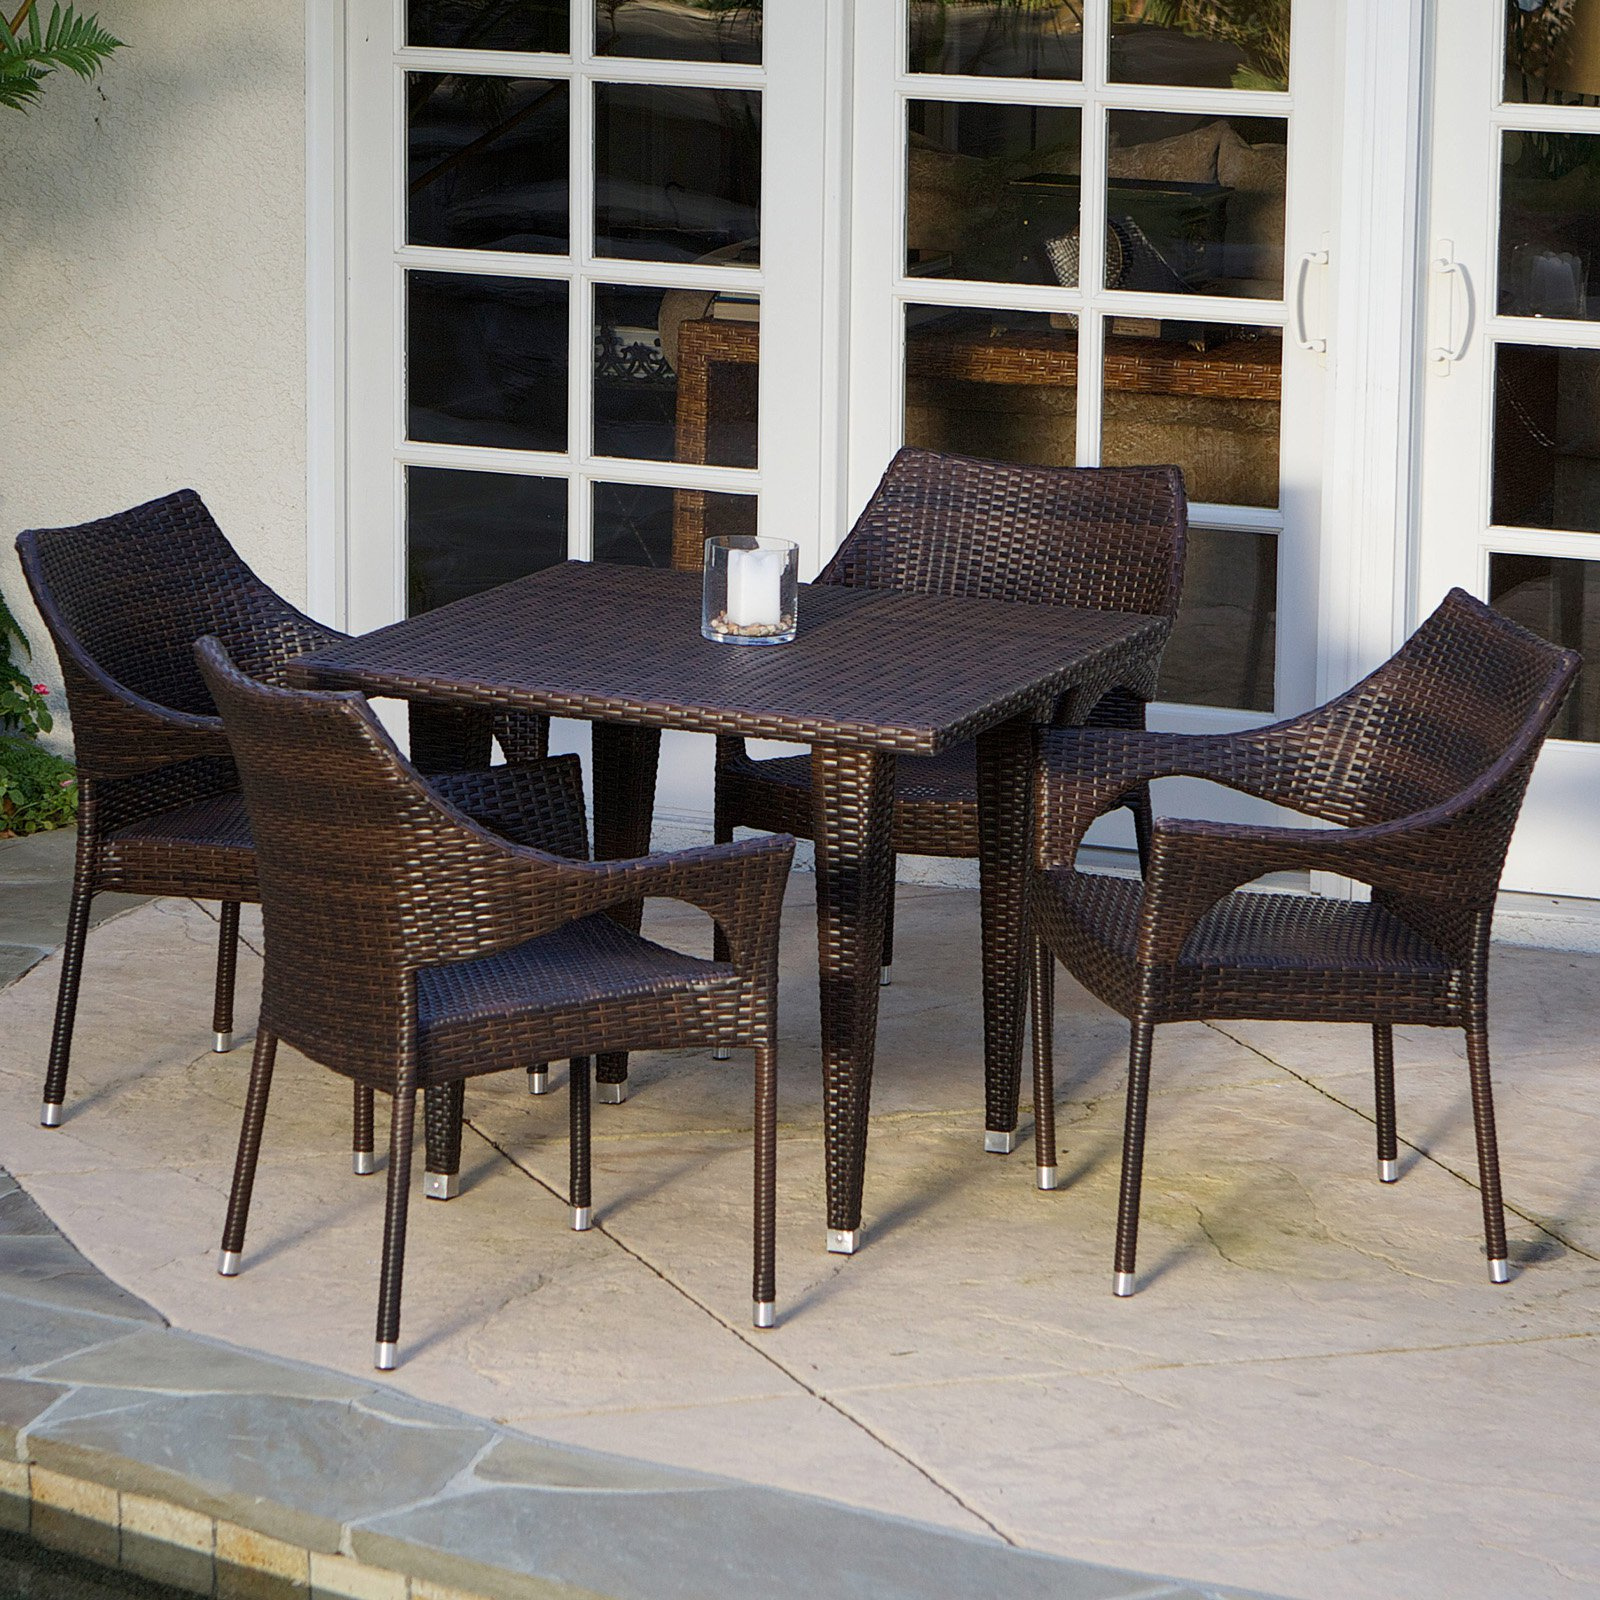 Cliff All-Weather Wicker Patio Dining Set - Seats 4